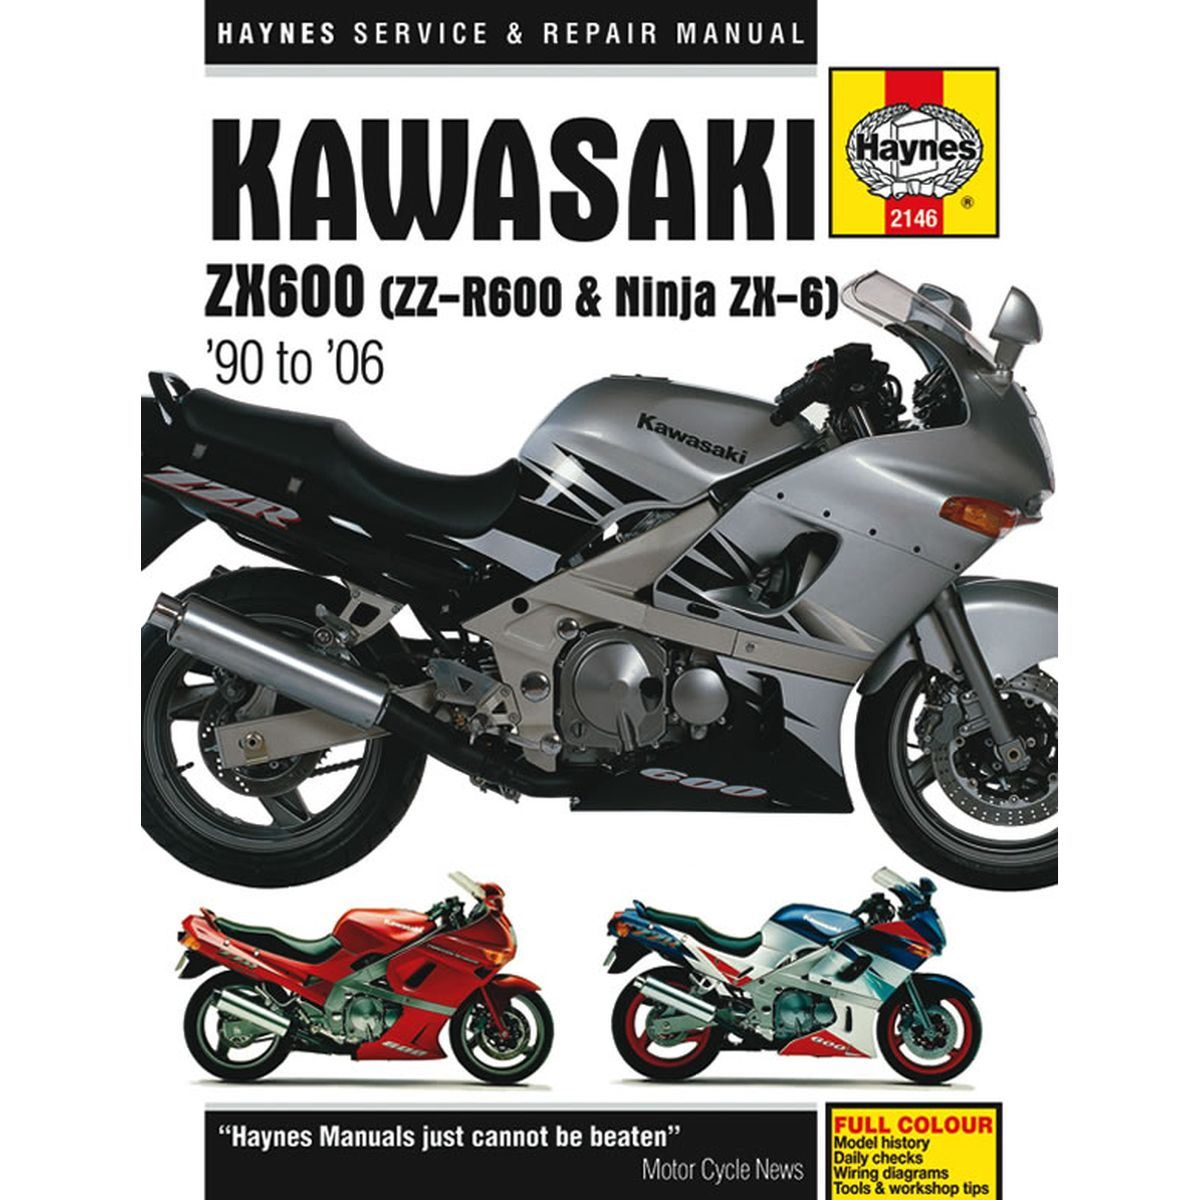 Manual Haynes for 1992 Kawasaki ZZR 600 (ZX600D3) | eBay on kawasaki mule 3010 ignition wiring diagram, kawasaki bayou 185 wiring-diagram, kawasaki kz550 wiring-diagram, kawasaki bayou 220 wiring diagram, kawasaki kz1000 wiring-diagram,